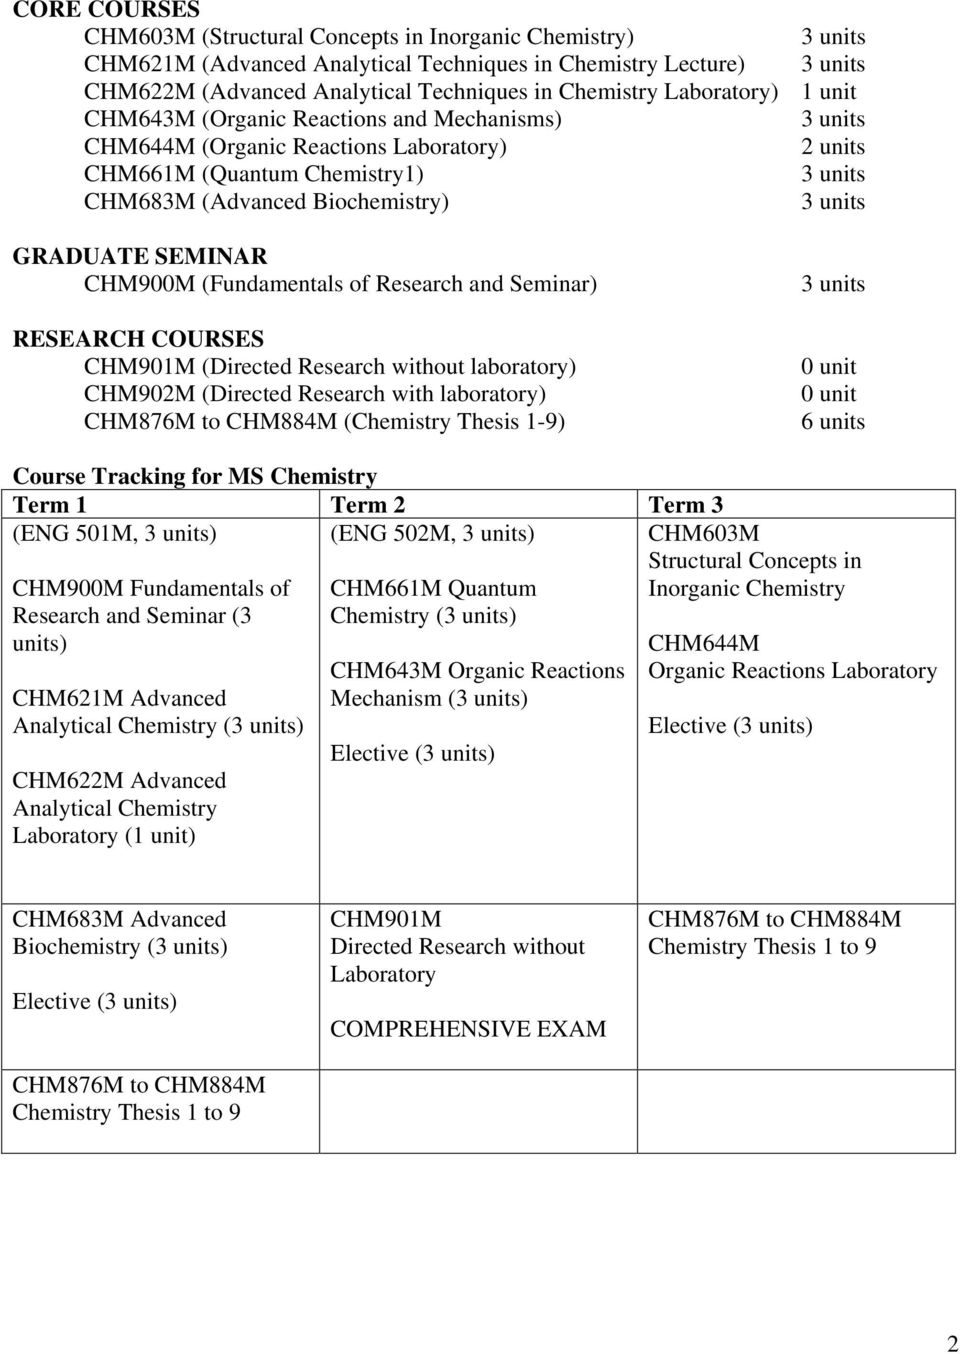 Research and Seminar) RESEARCH COURSES CHM901M (Directed Research without laboratory) CHM902M (Directed Research with laboratory) CHM876M to CHM884M (Chemistry Thesis 1-9) 0 unit 0 unit 6 units